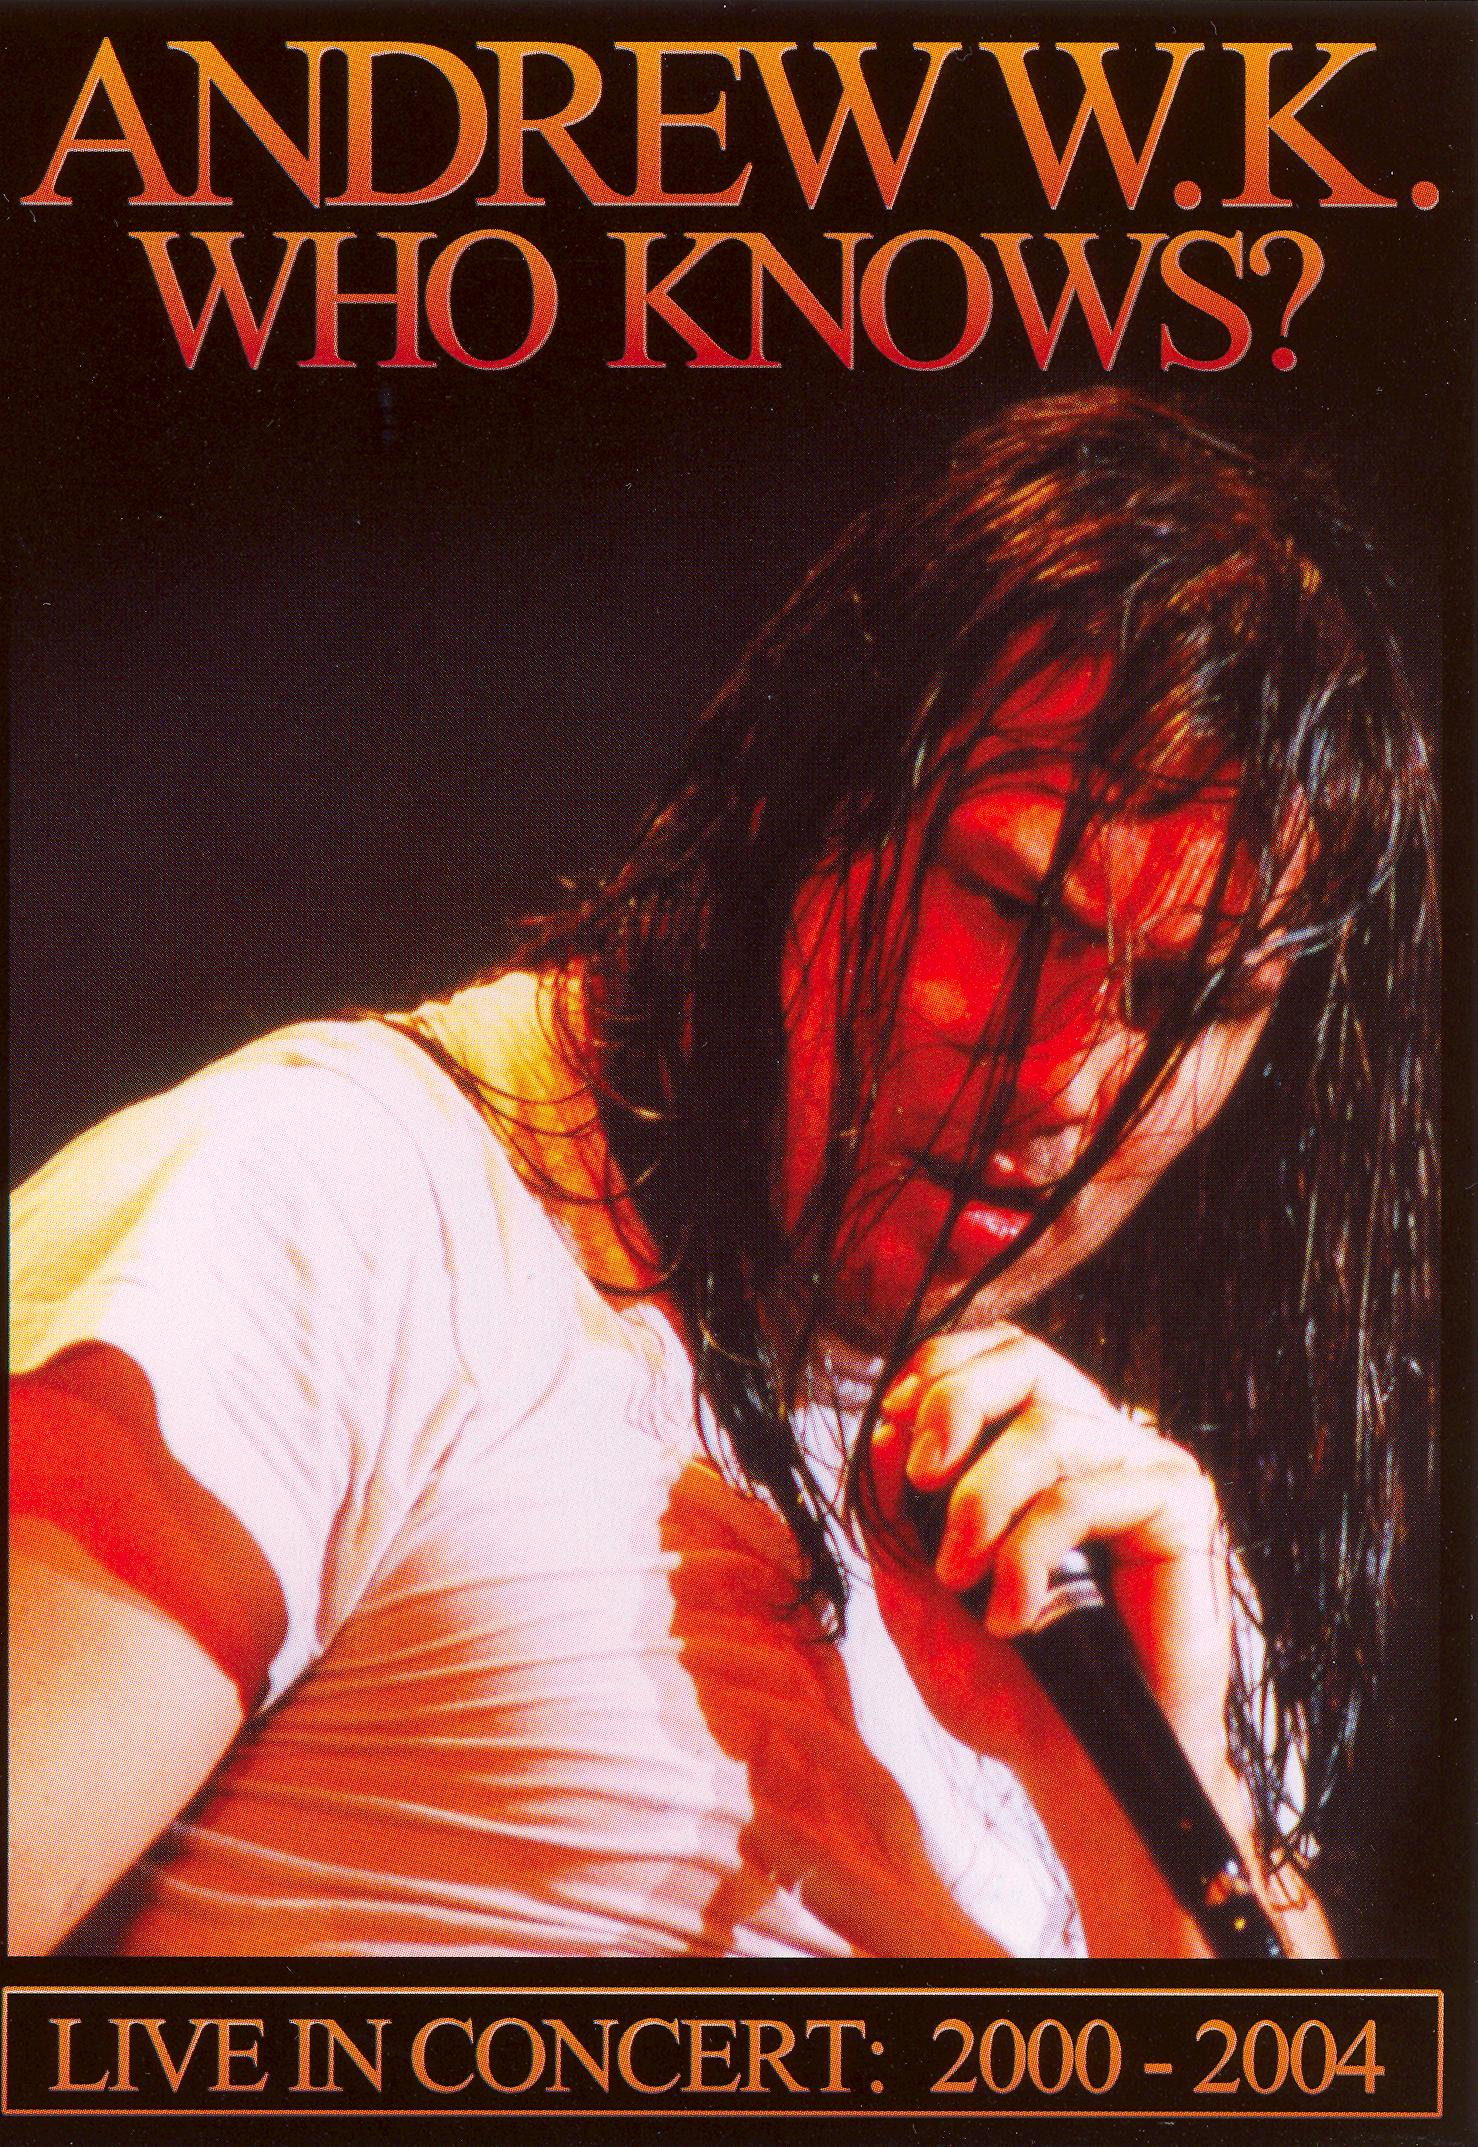 Andrew W.K.: Who Knows? Live in Concert 2000-2004